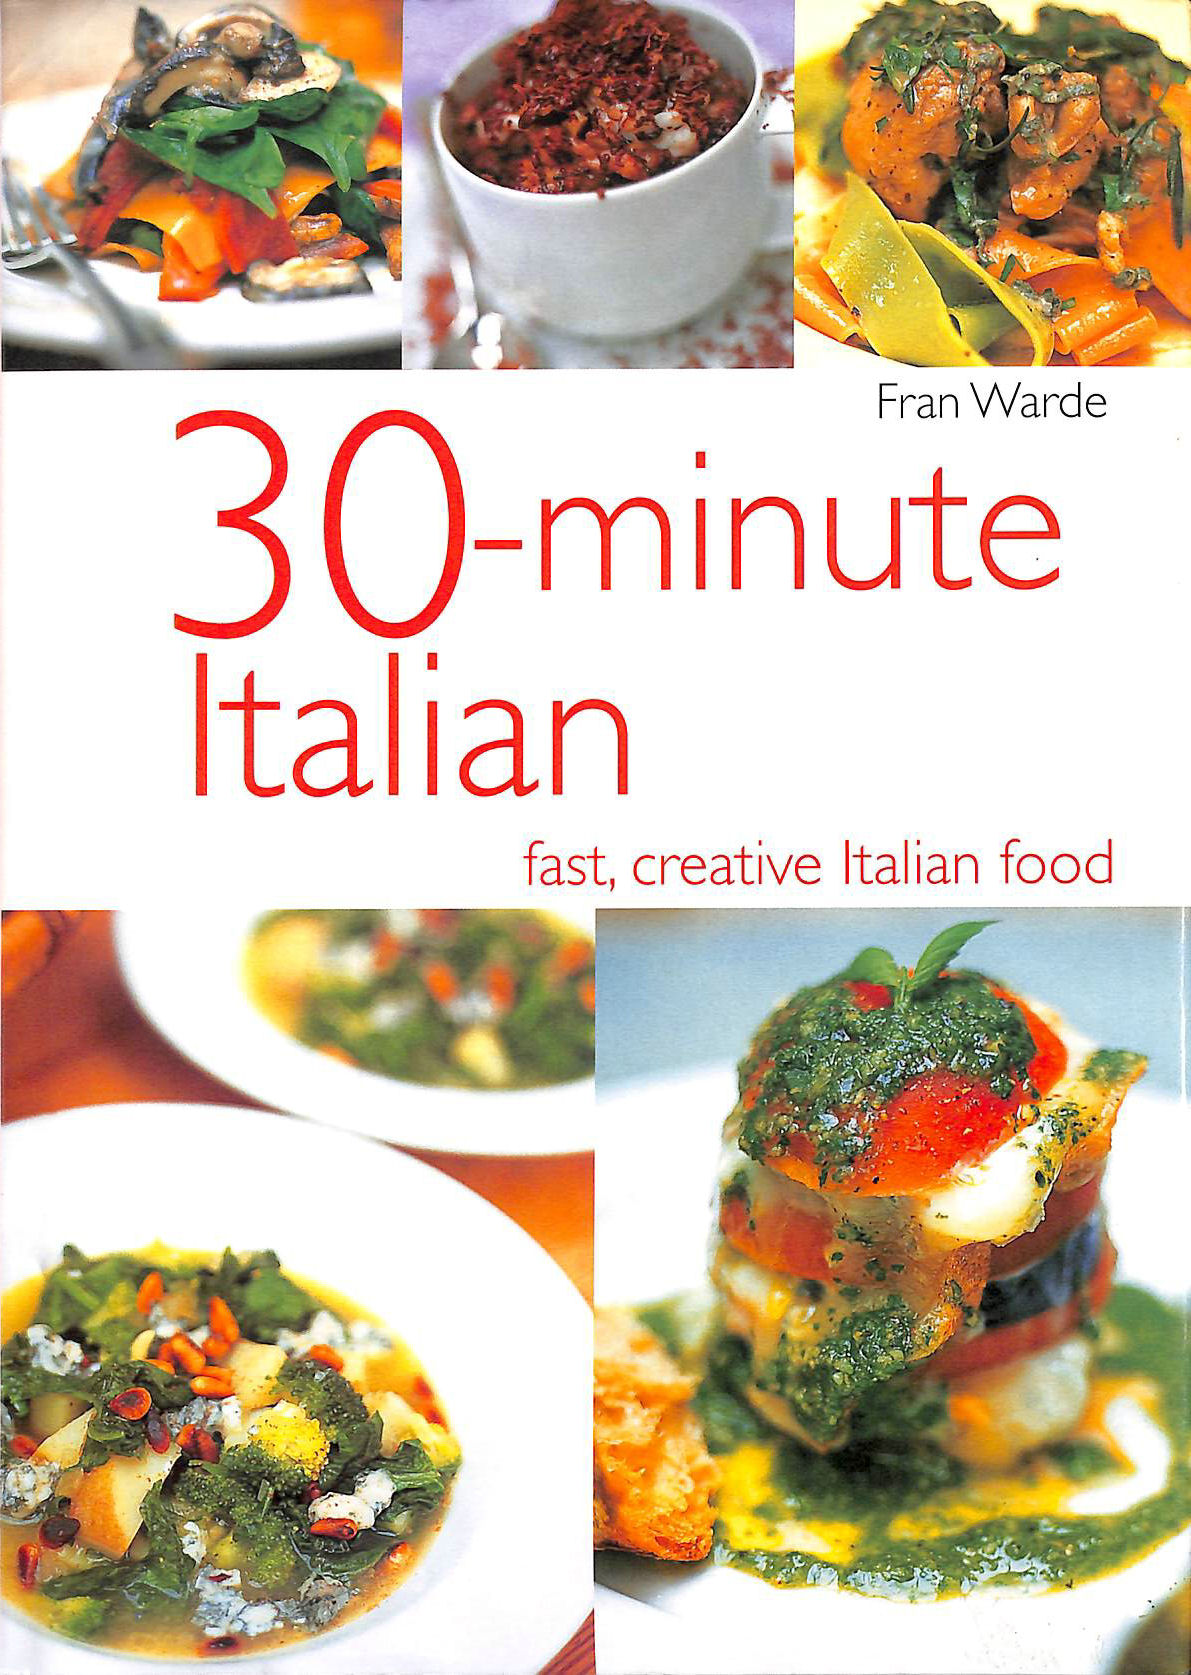 Image for 30 - Minute Italian